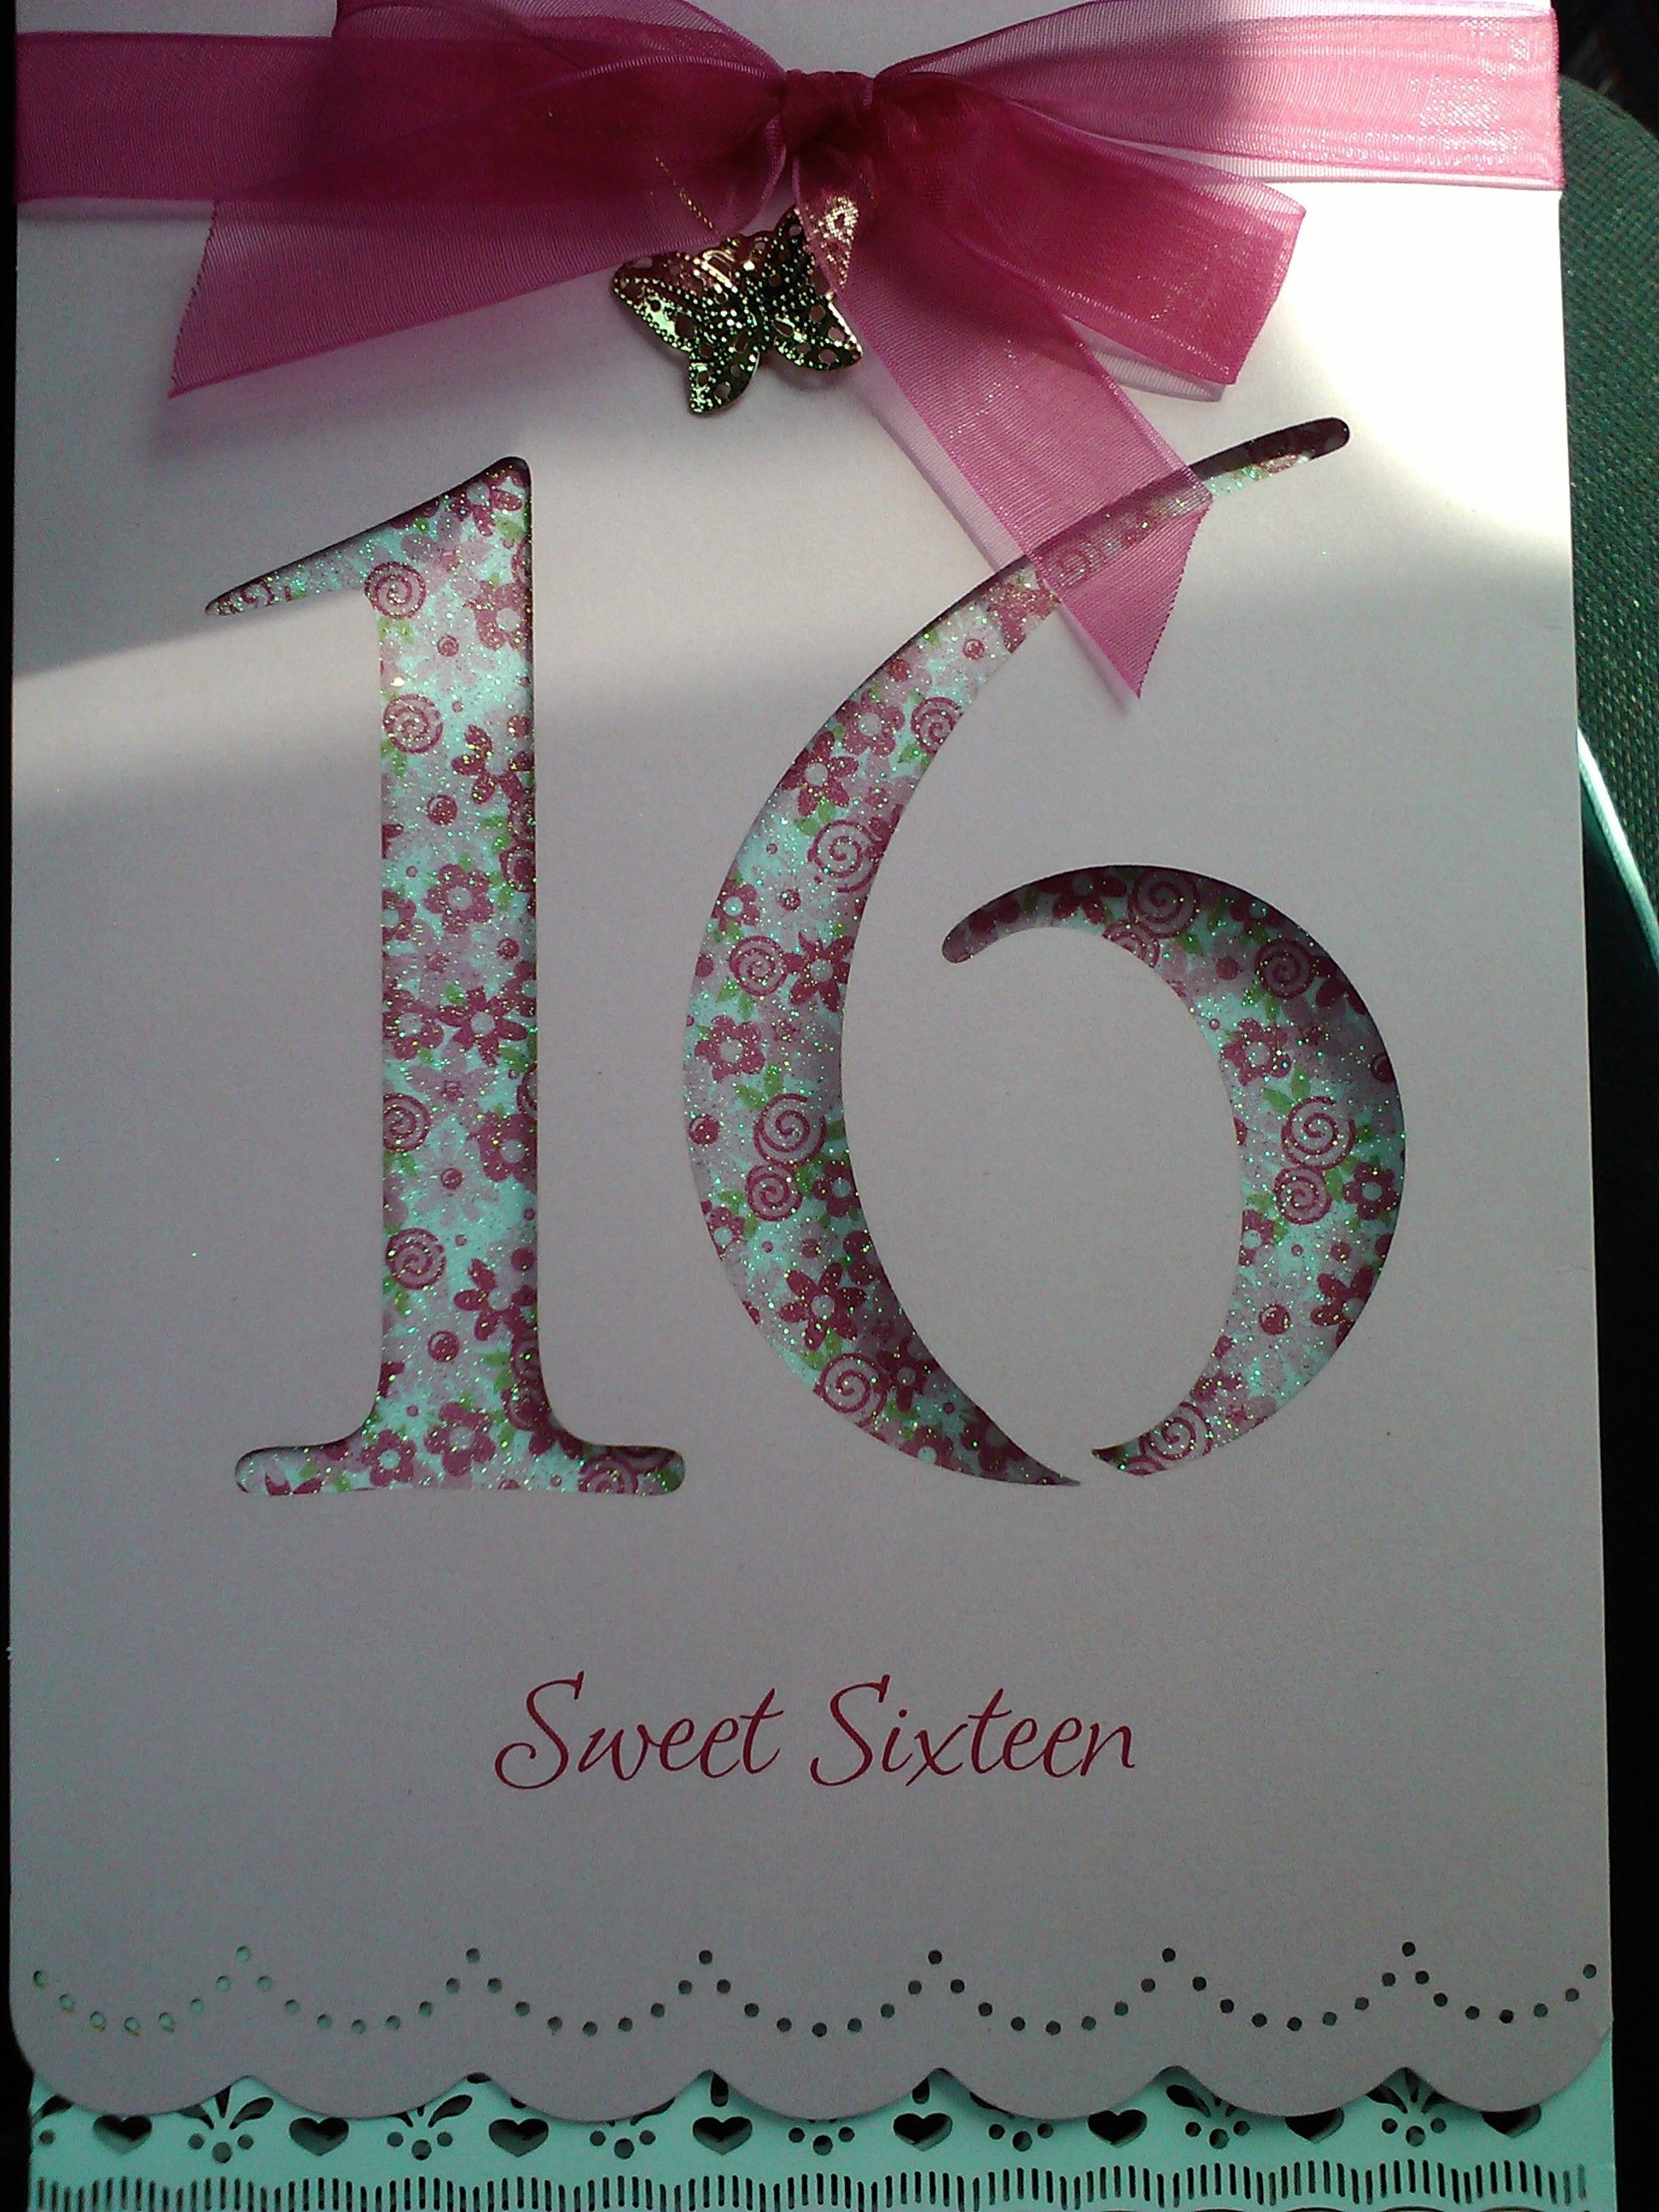 Sweet 16 sweet 16 pinterest sweet 16 cards and birthdays sweet 16 special birthday cardsgirl bookmarktalkfo Images